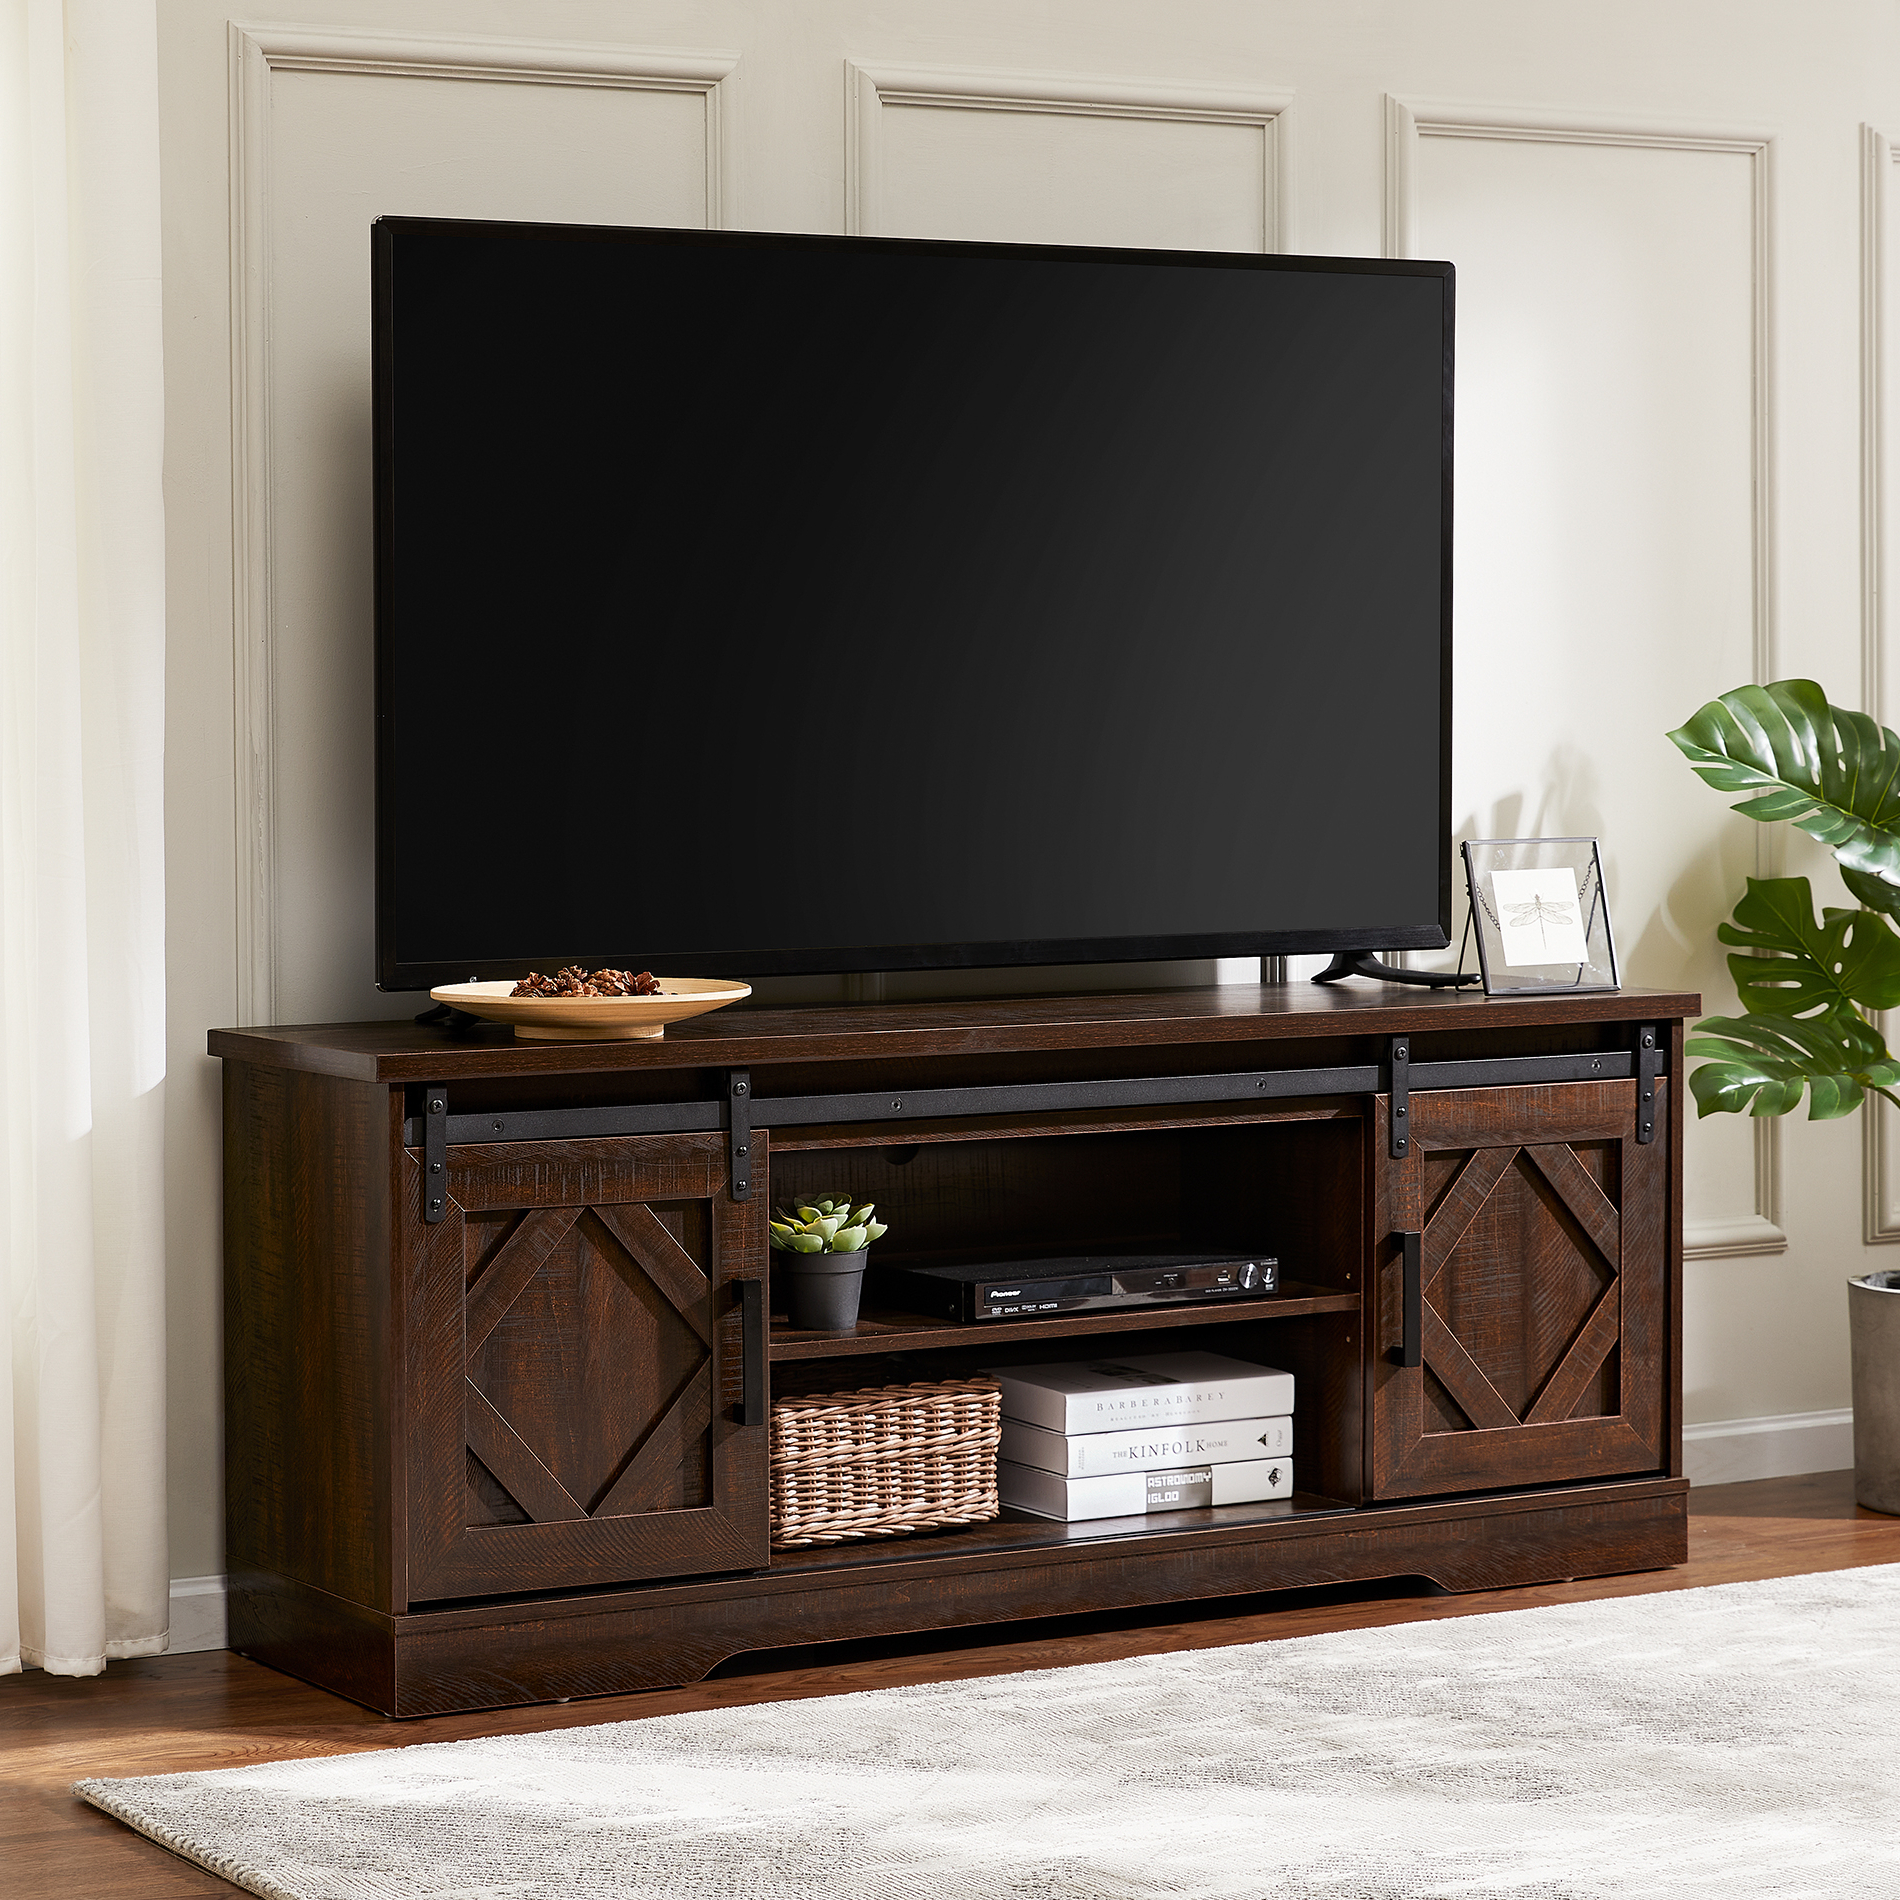 """Wampat Sliding Barn Door Tv Stand For 70 Inch Flat Screen Pertaining To Trendy Lorraine Tv Stands For Tvs Up To 70"""" (View 16 of 20)"""